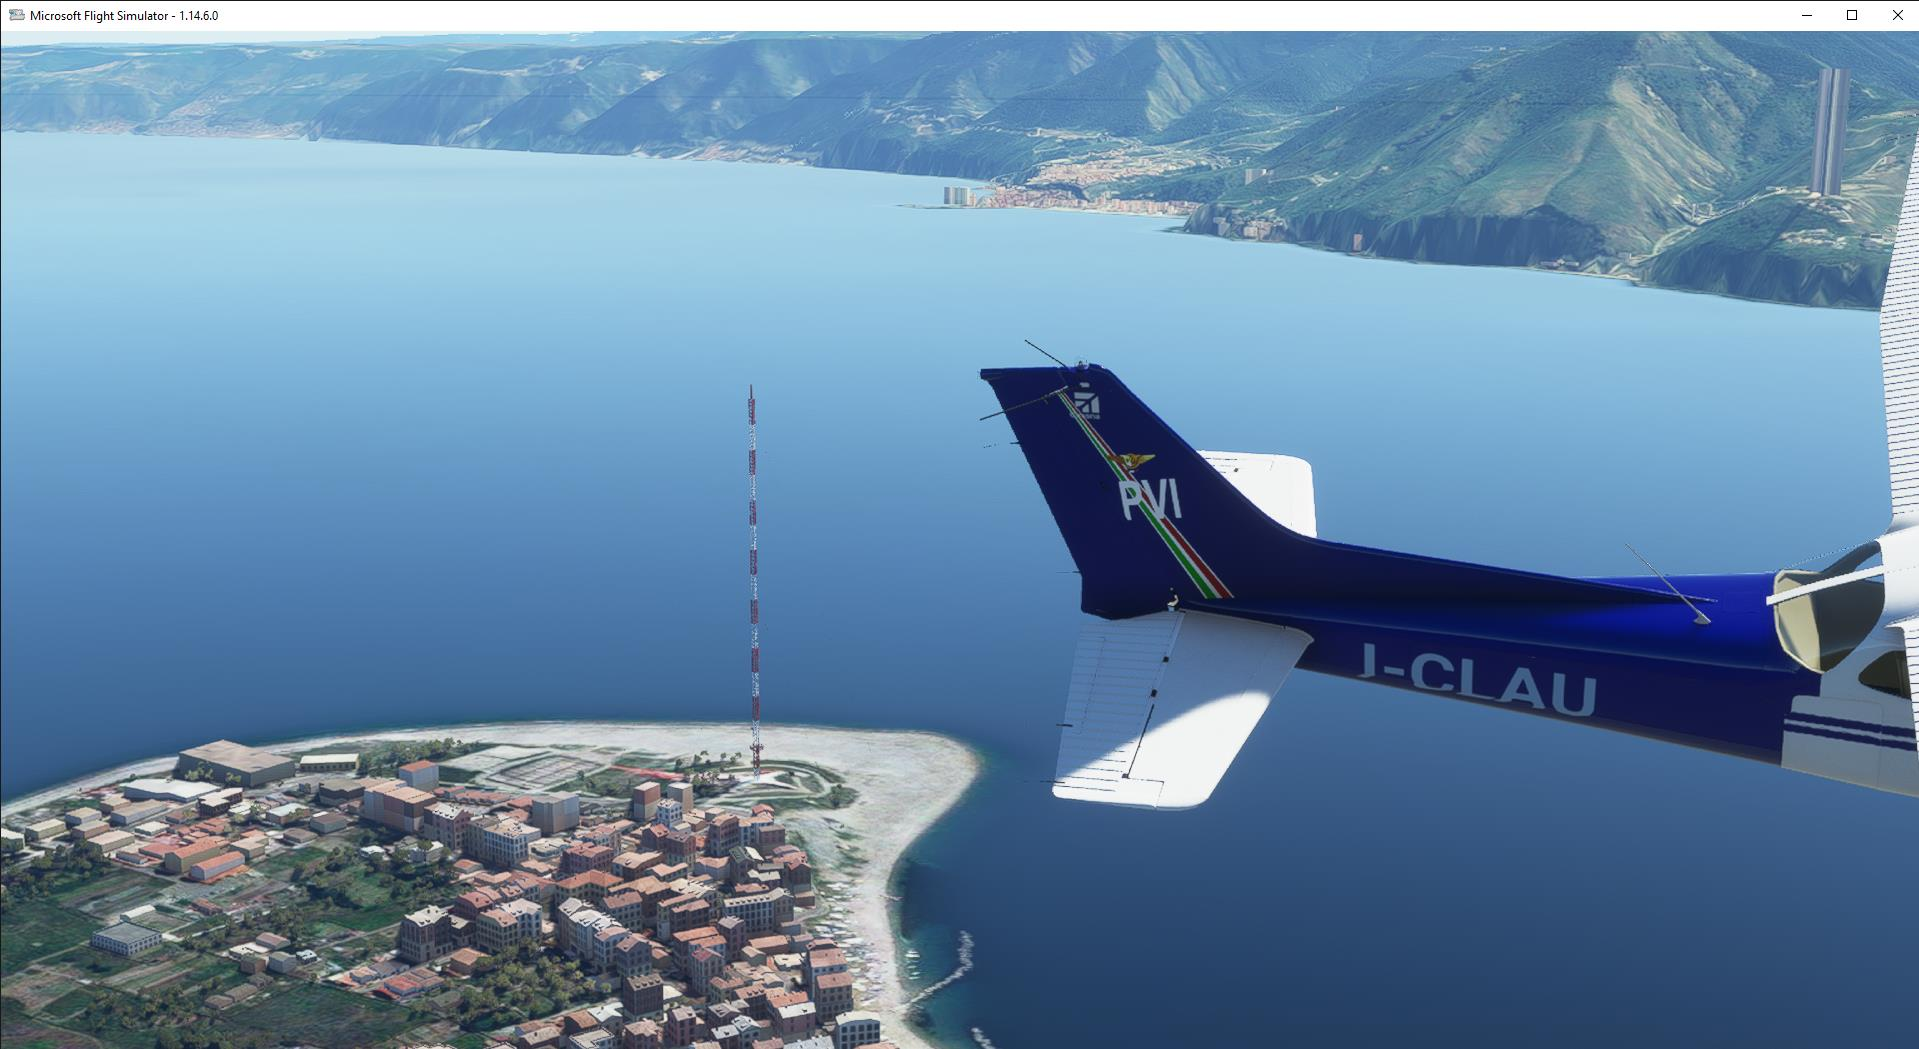 https://vivendobyte.blob.core.windows.net/59034/Microsoft Flight Simulator - 1.14.6.0 05_04_2021 22_37_16.jpg